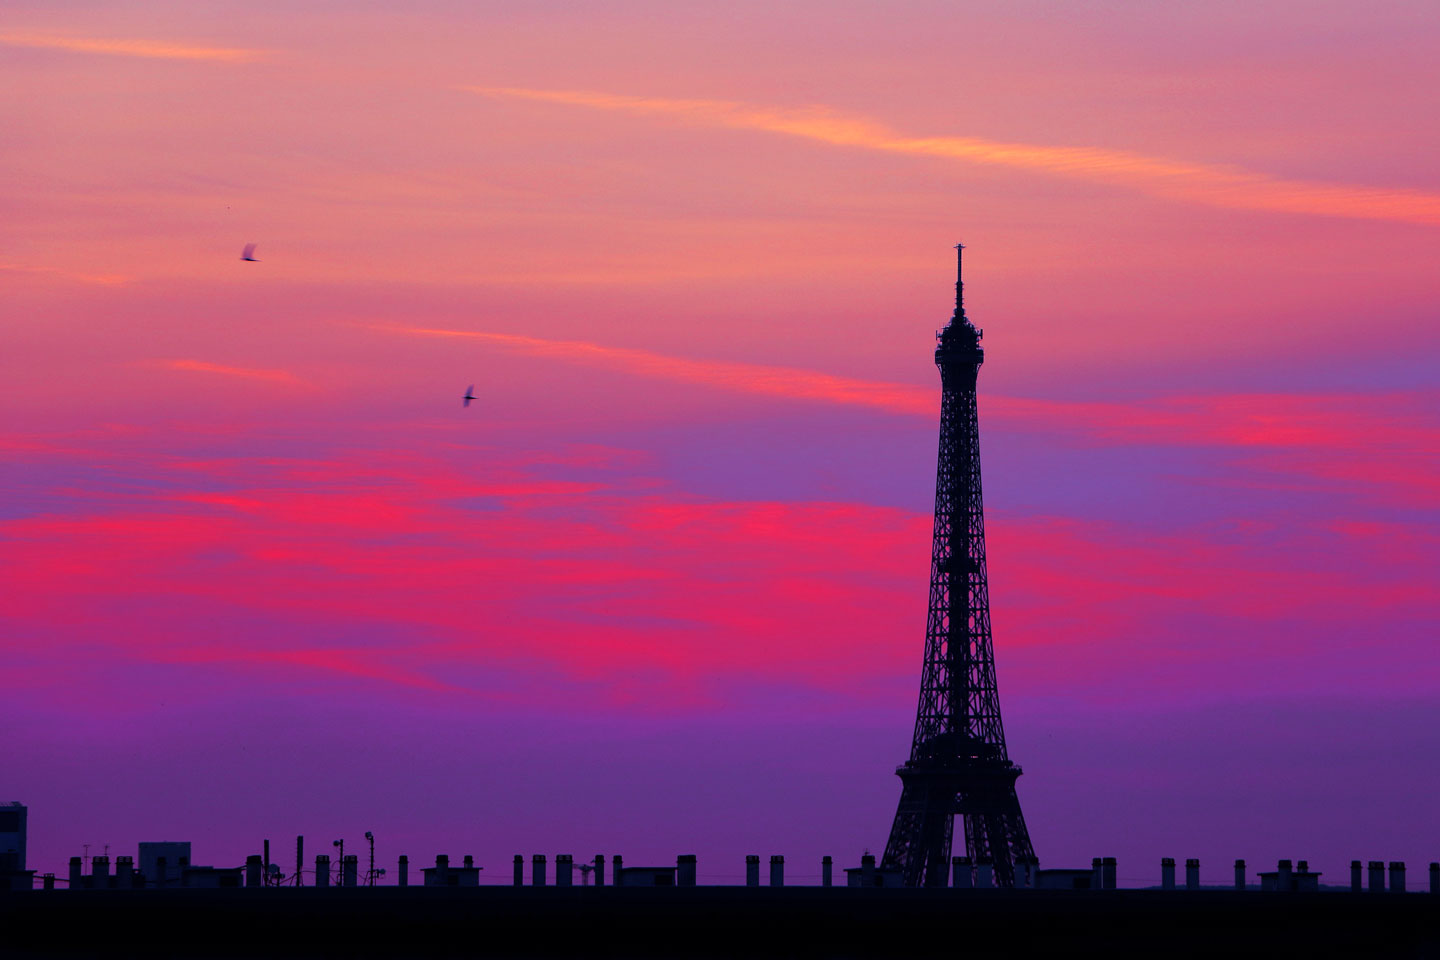 French Photographer Paris France Landscape Photography Sunset at Eiffel Tower with Flight of birds